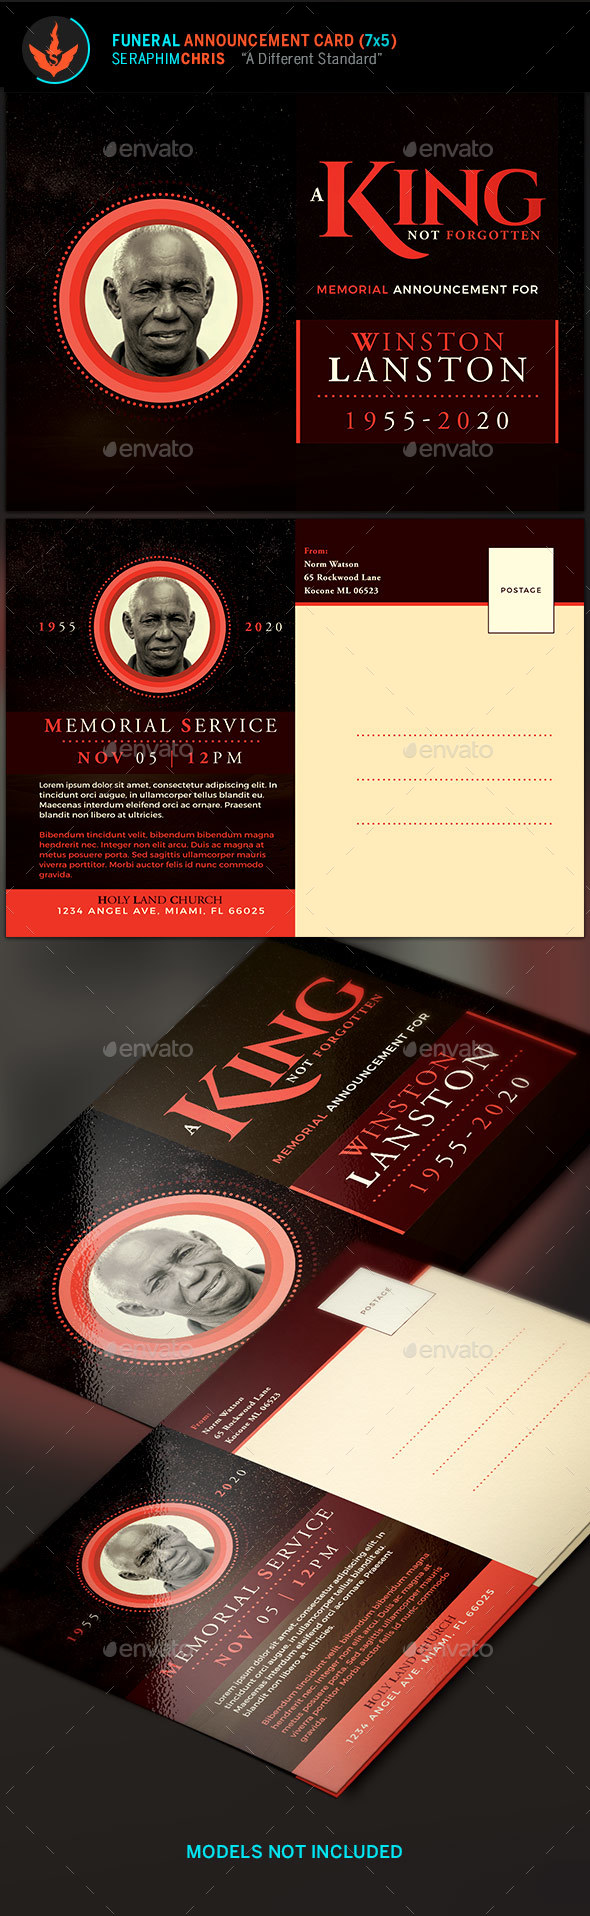 King Funeral Announcement Card Template - Cards & Invites Print Templates